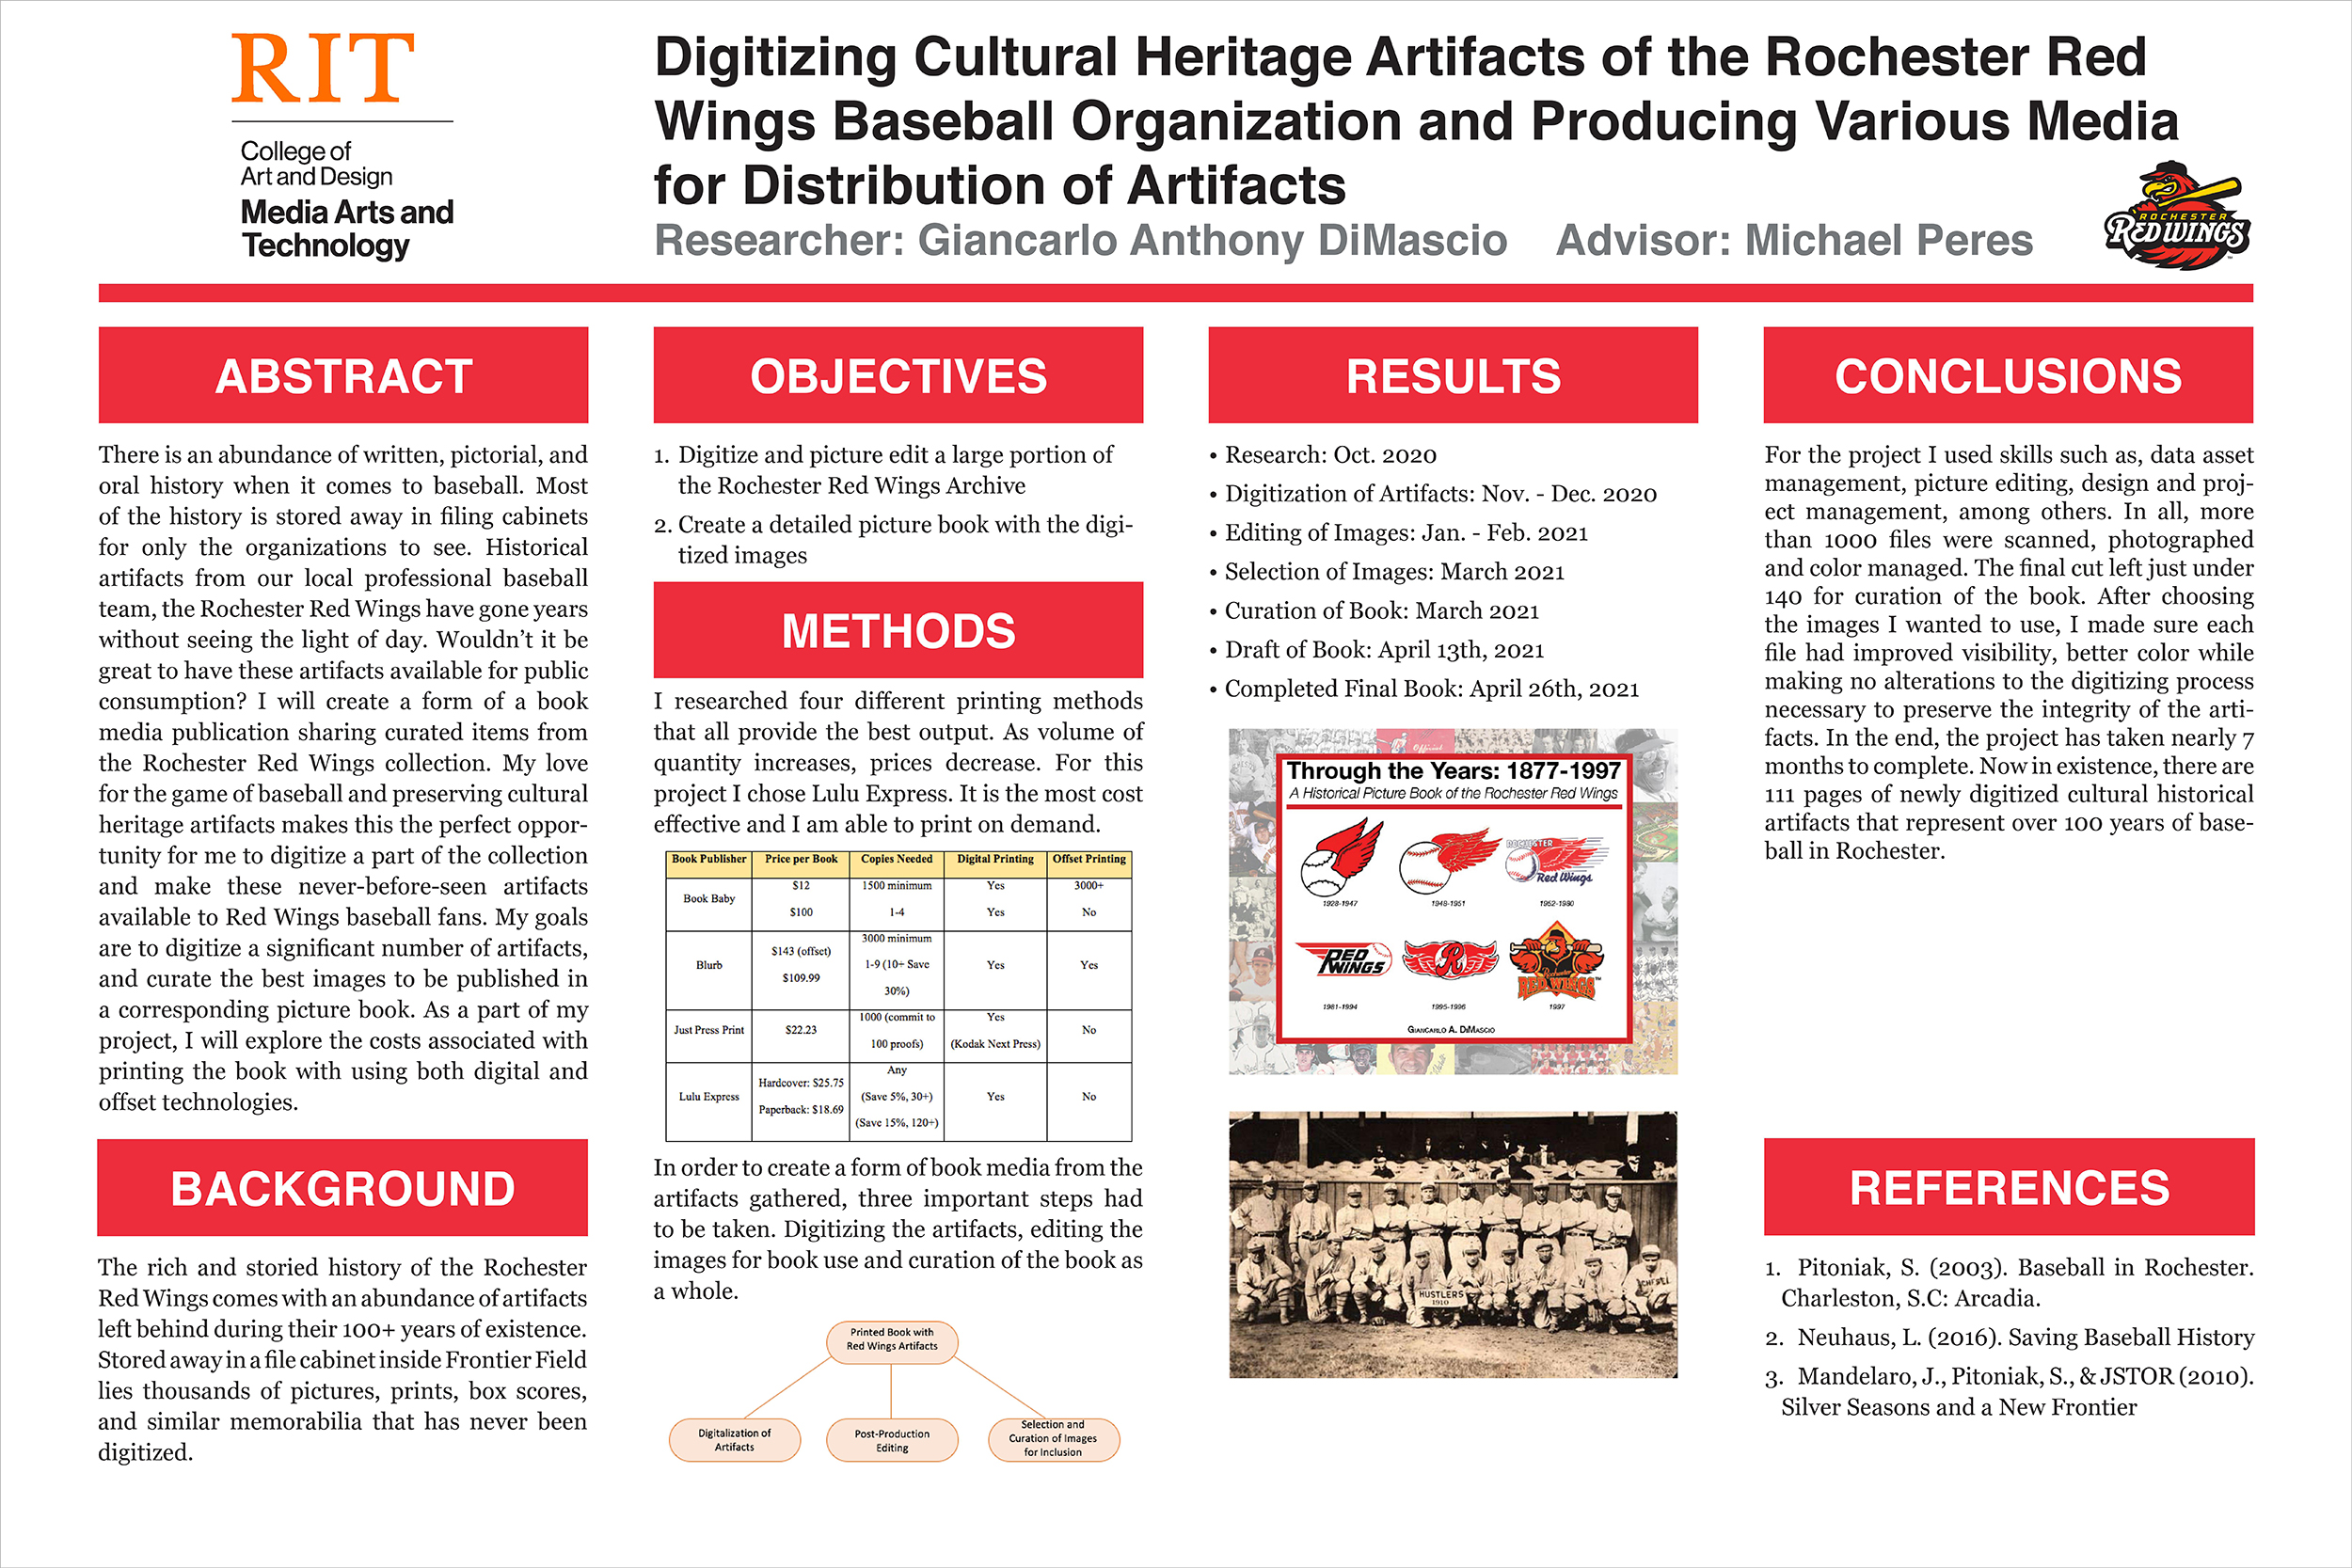 A poster detailing a plan to digitize cultural artifacts of the Rochester Red Wings baseball team.